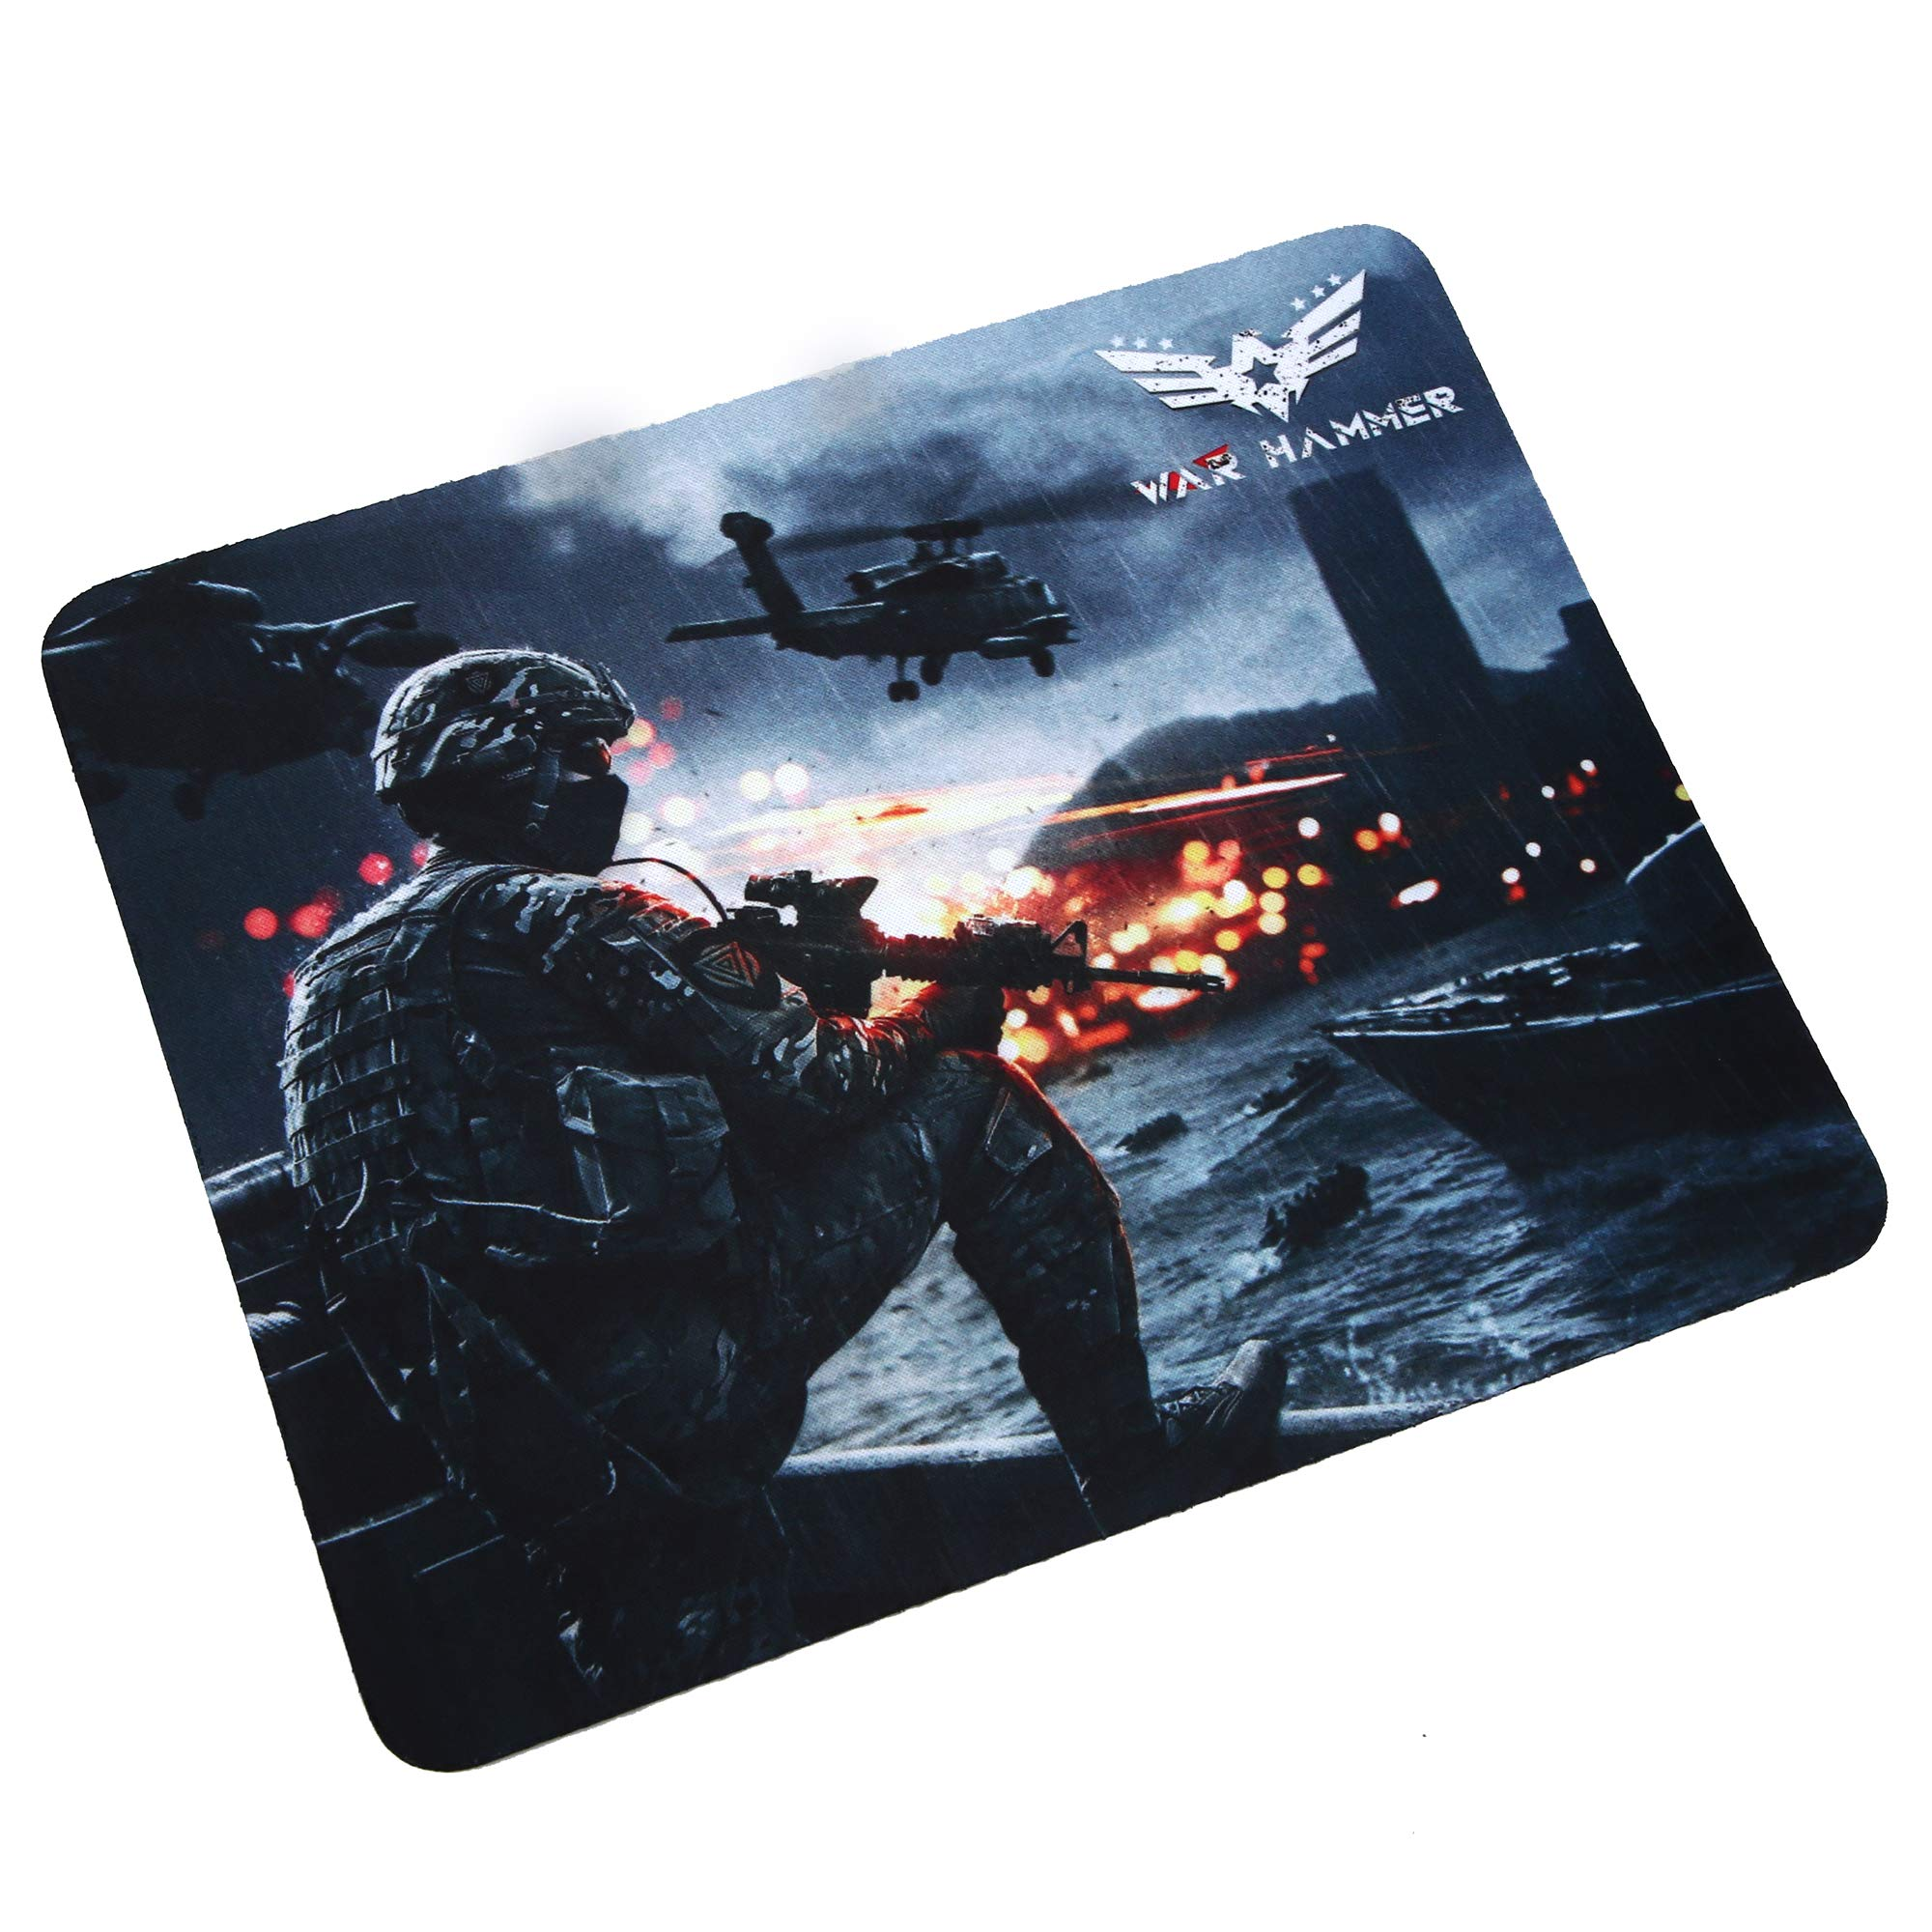 WAR HAMMER GX1050 Speed Type Gaming Mousepad (Small, Black/Blue)